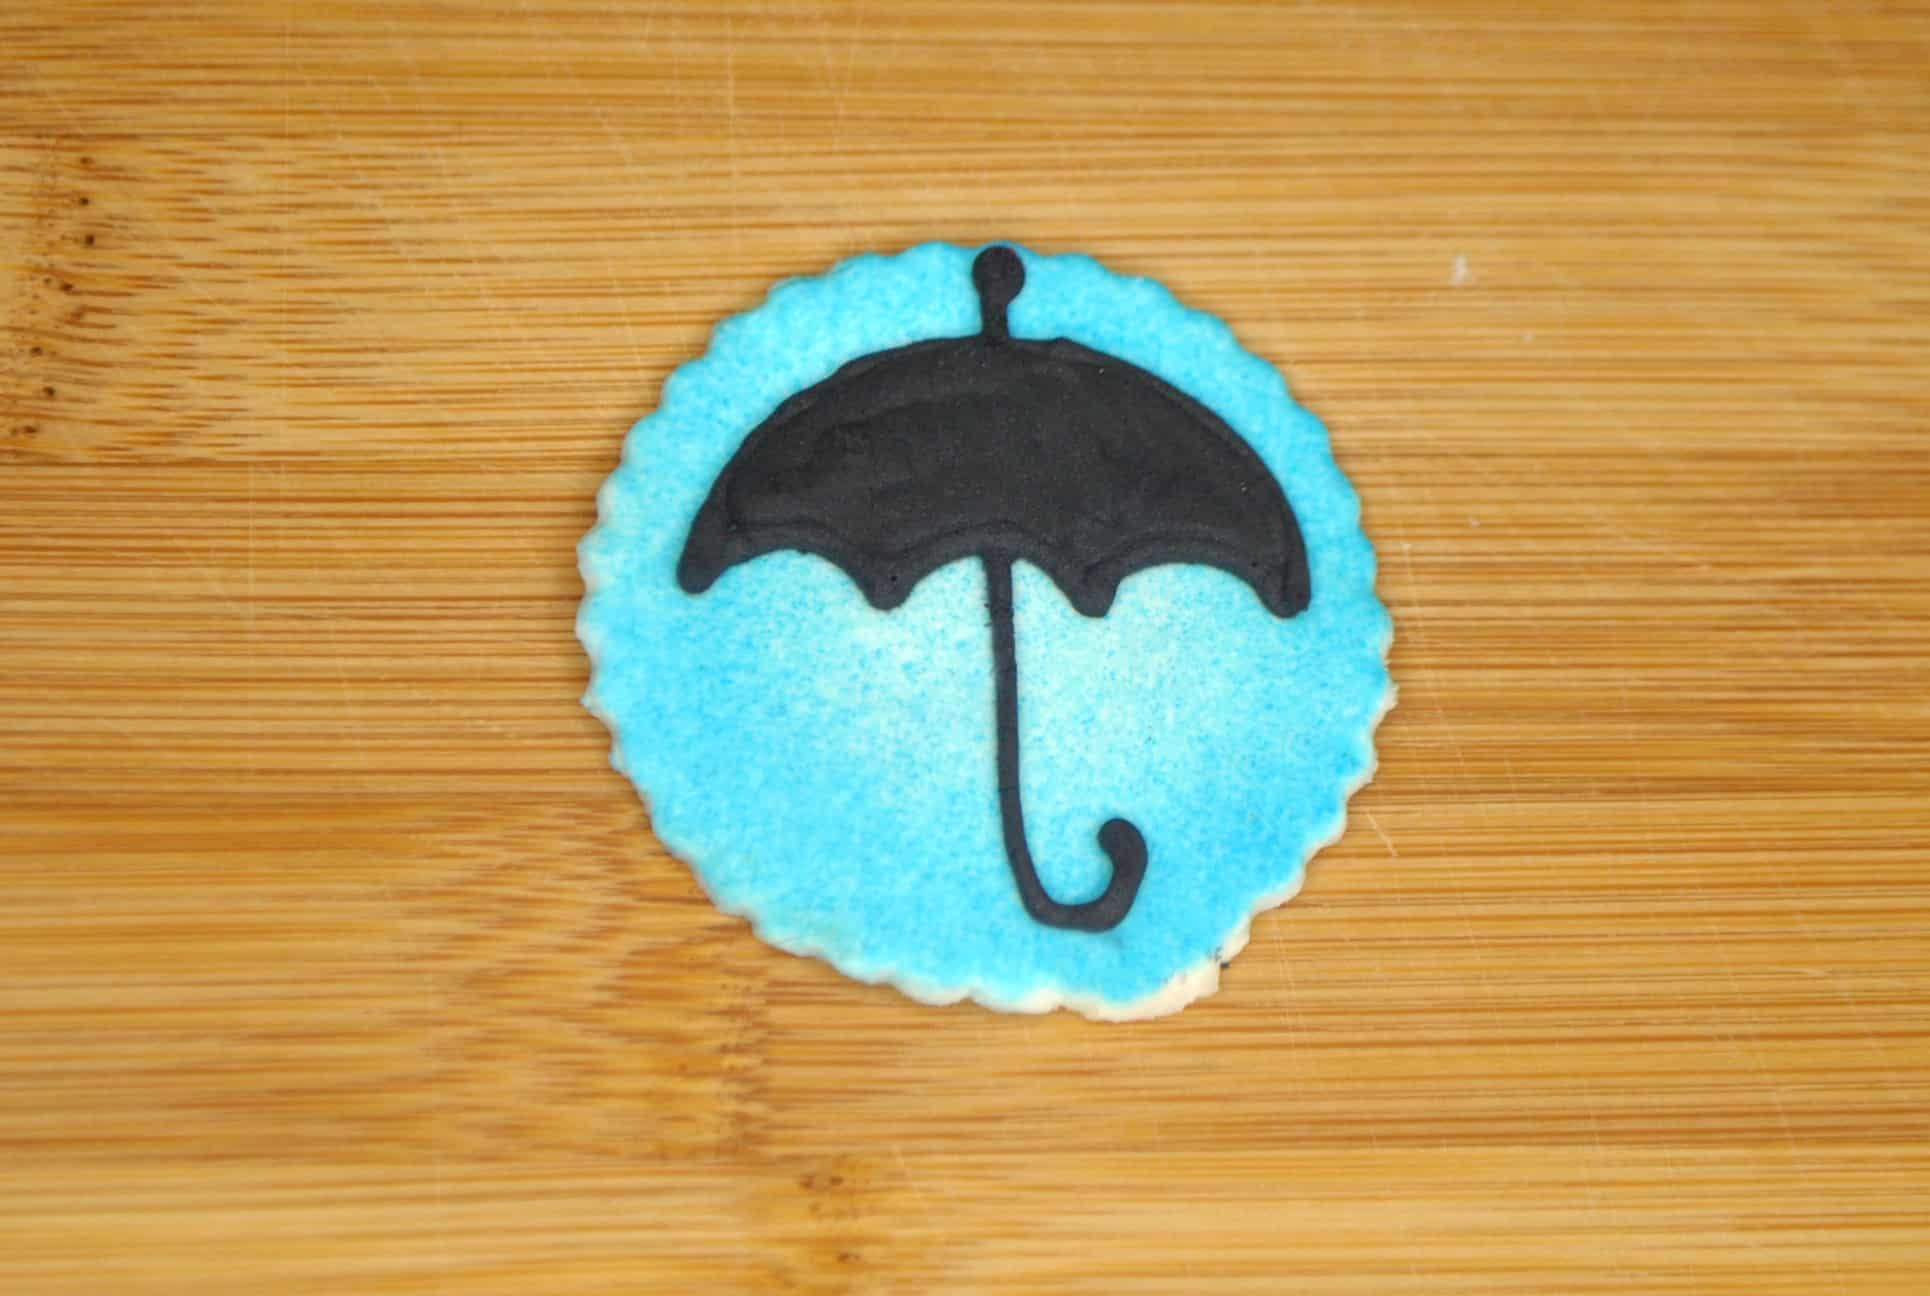 black umbrella on fondant